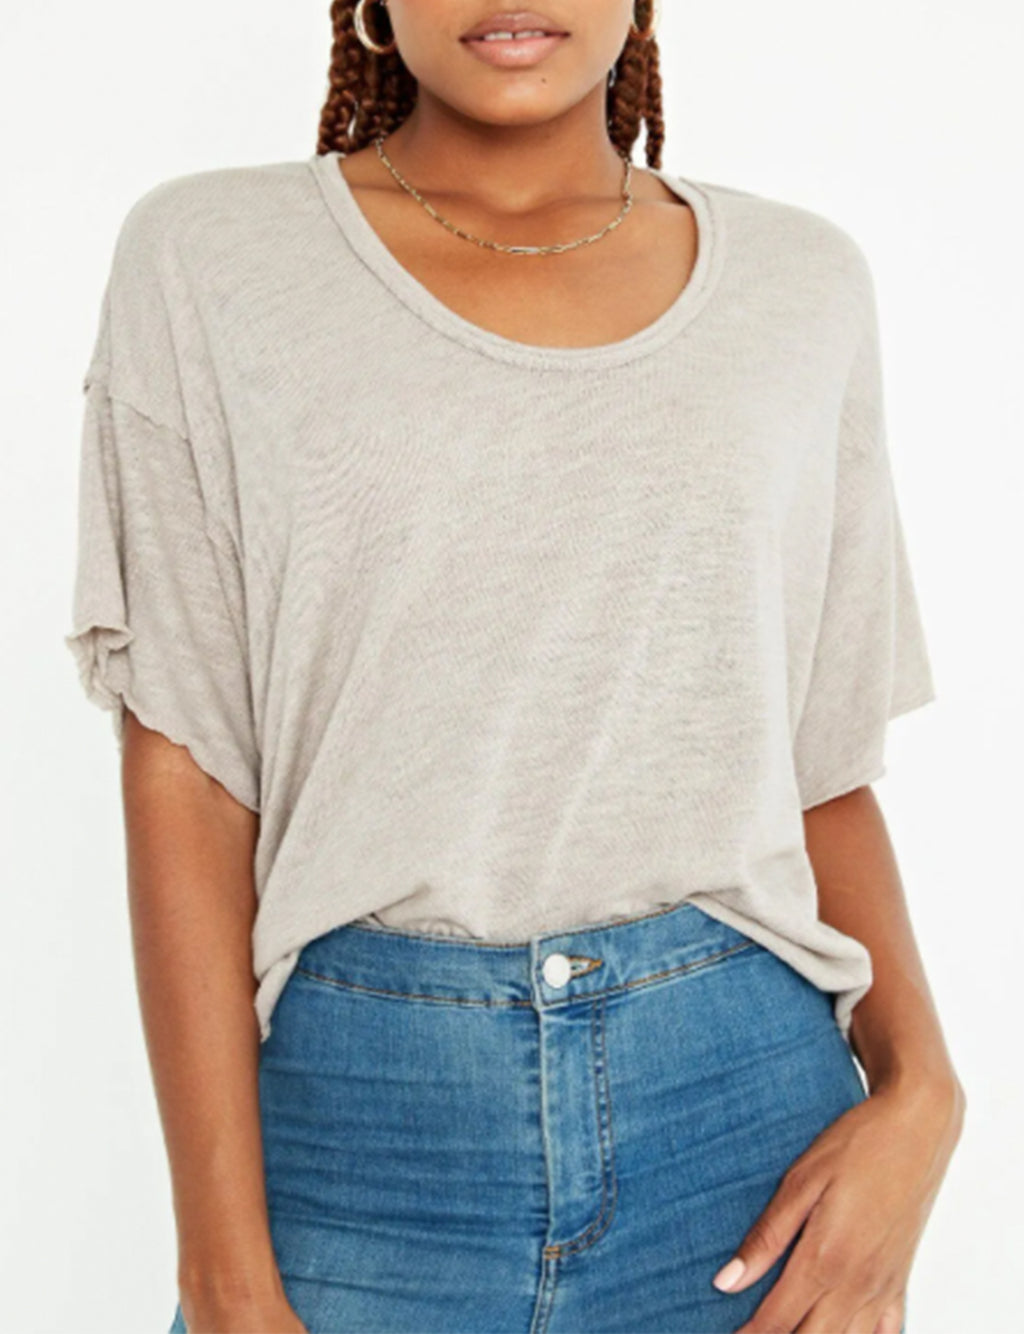 Moments Textured Tee in Almond Latte